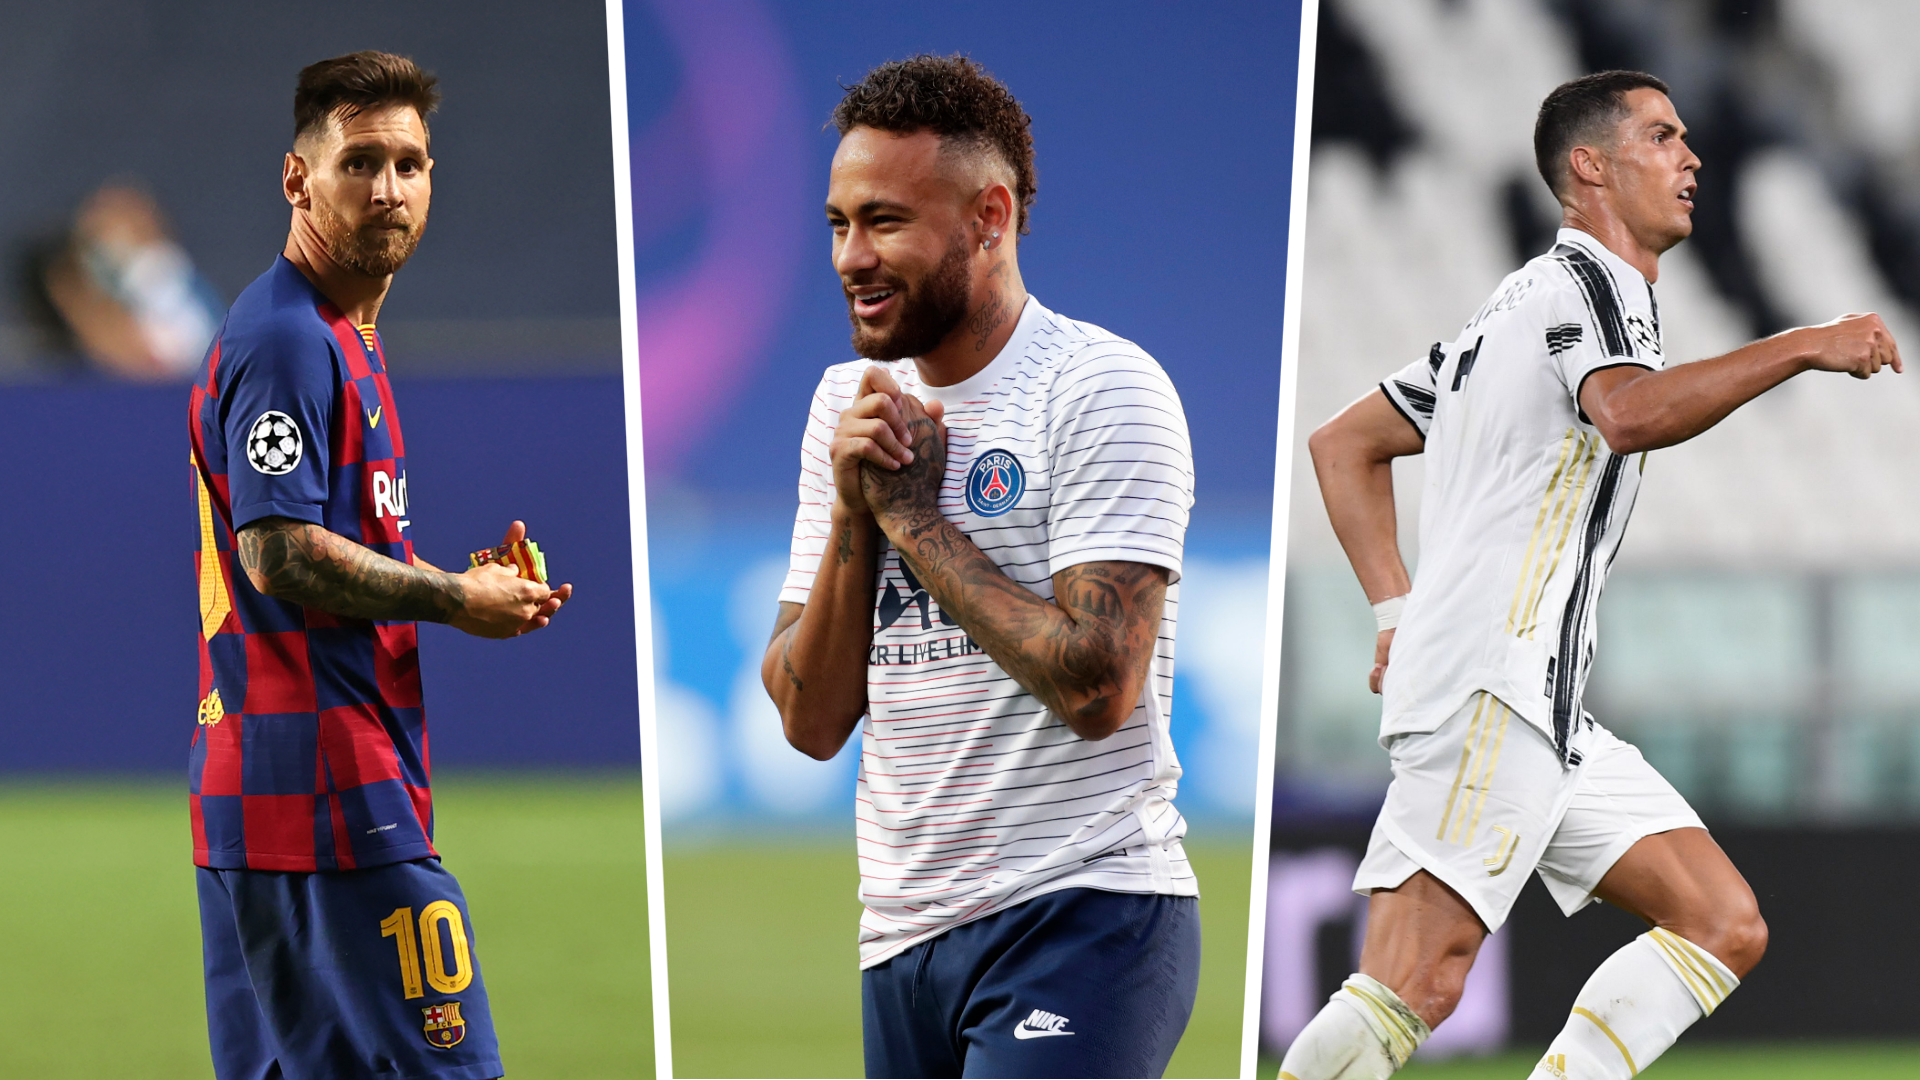 Neymar aiming for Ballon d'Or, admits Messi and Ronaldo are 'not from this planet' 1